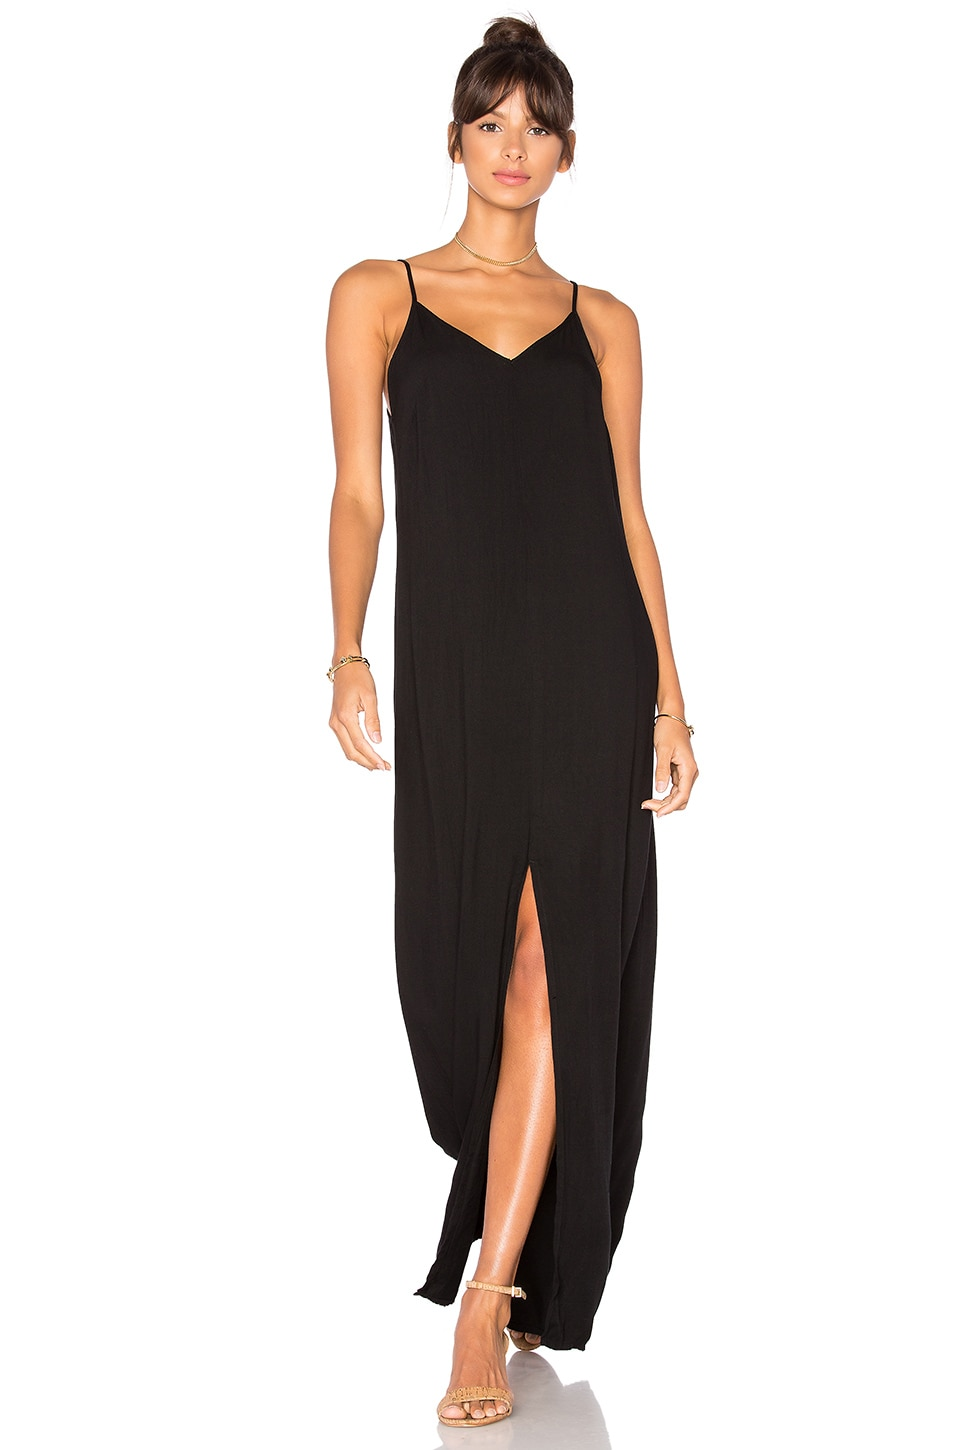 LA Made Kate Slip Dress in Black